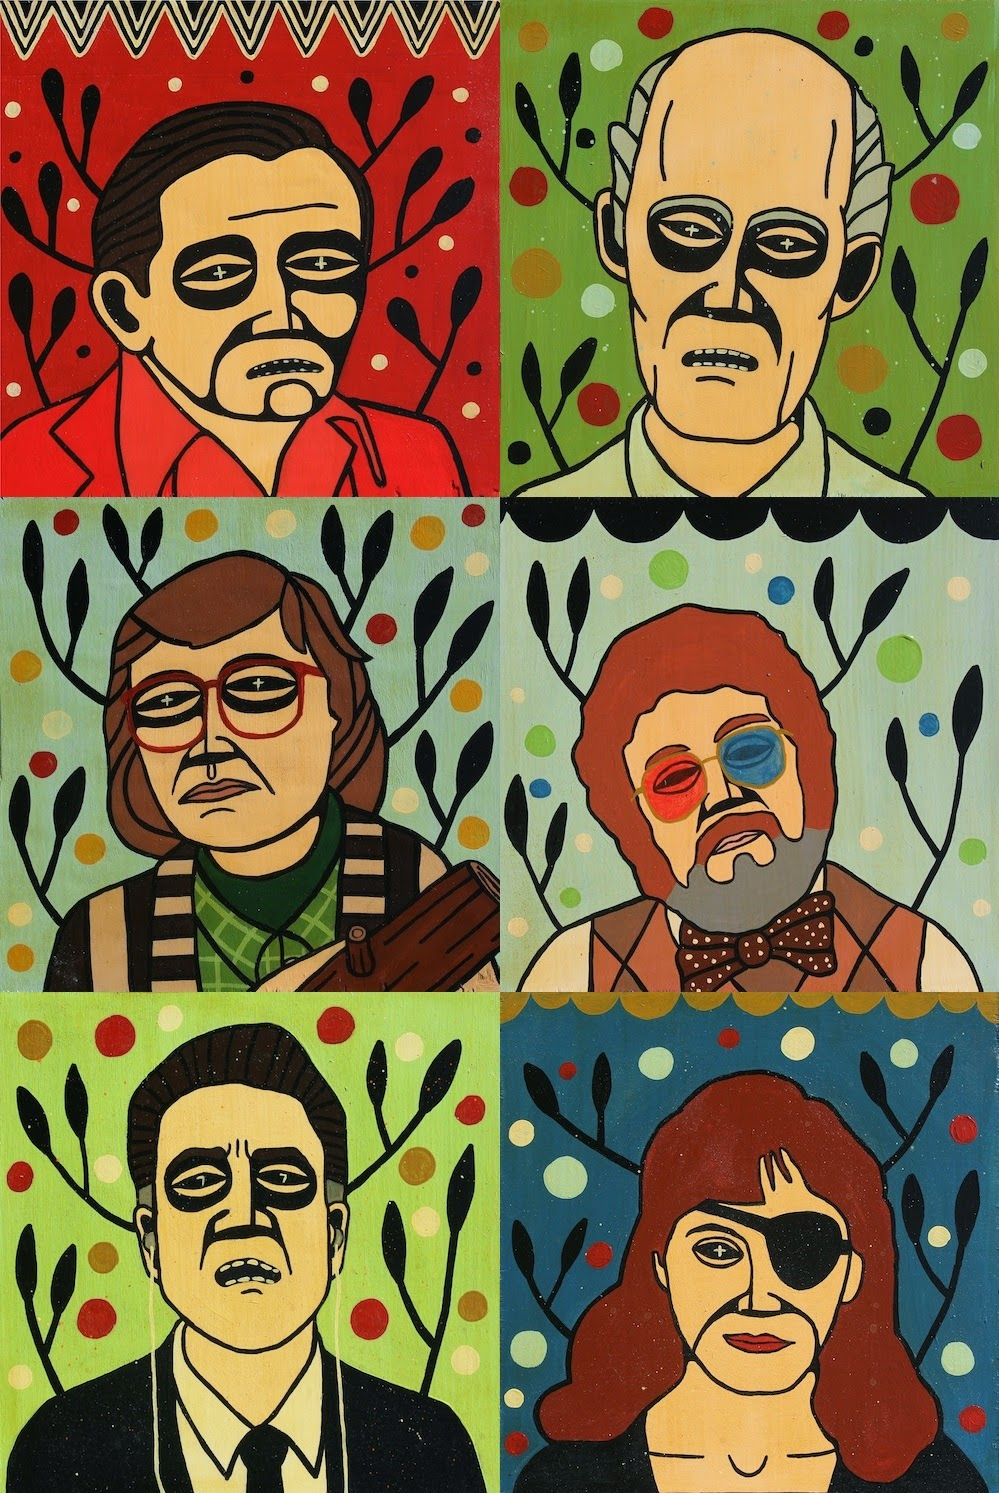 Twin Peaks Painting and Print Series by Mike Egan - The Man from Another Place, The Giant, The Log Lady, Dr. Lawrence Jacoby, Gordon Cole & Nadine Hurley